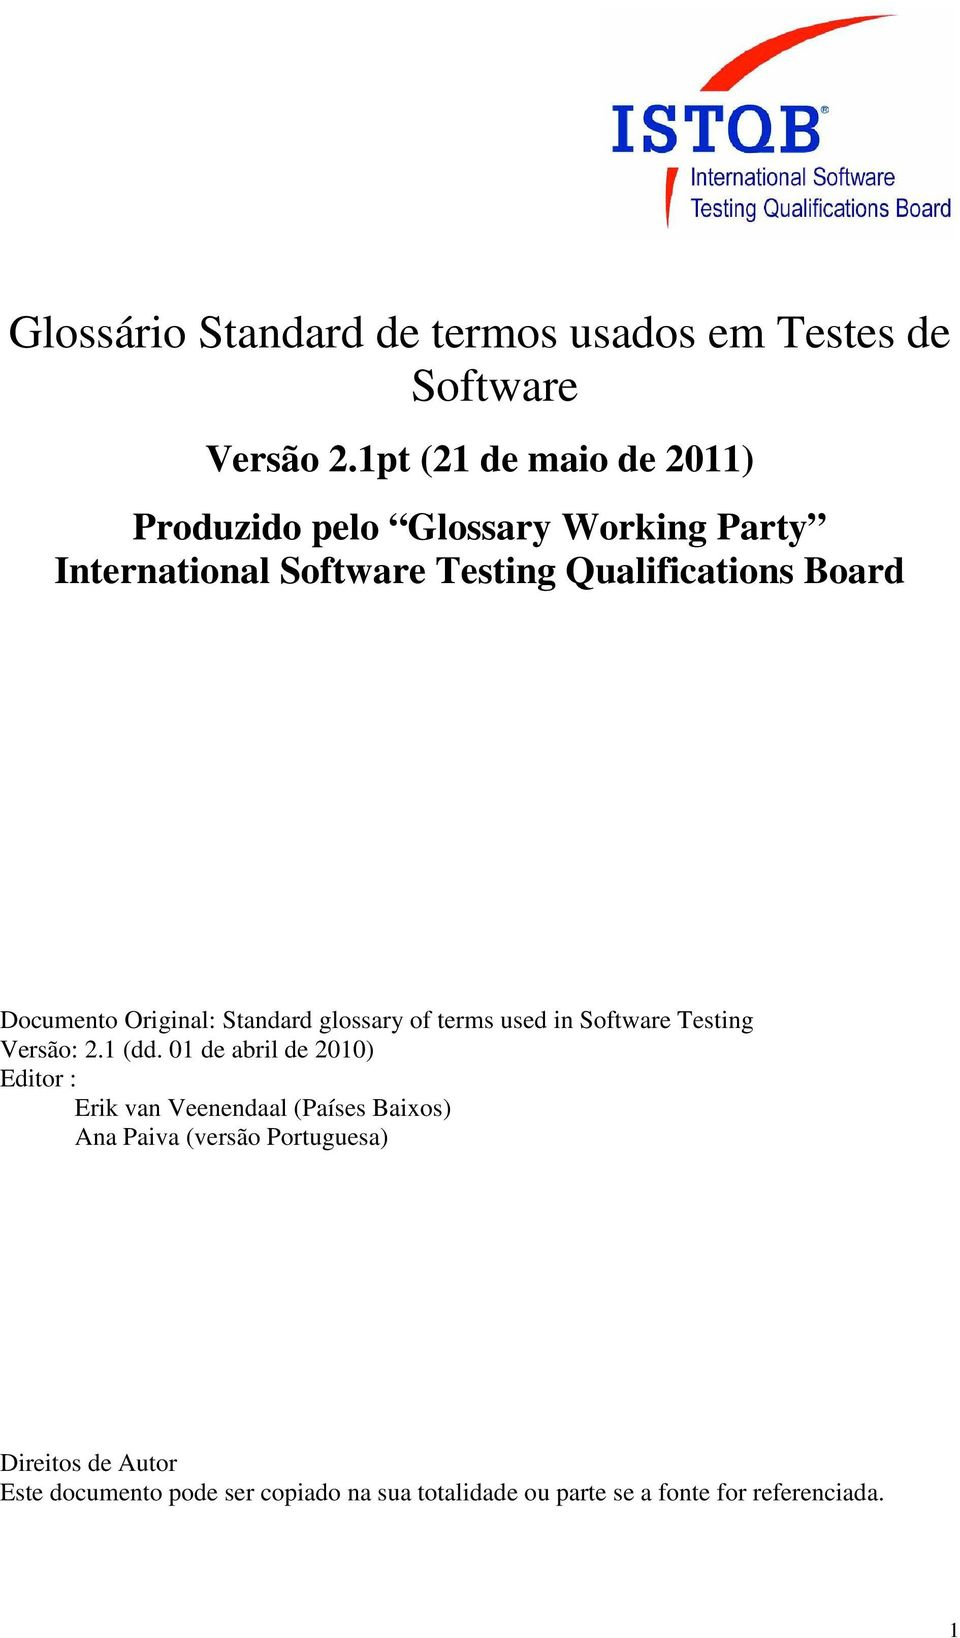 Documento Original: Standard glossary of terms used in Software Testing Versão: 2.1 (dd.